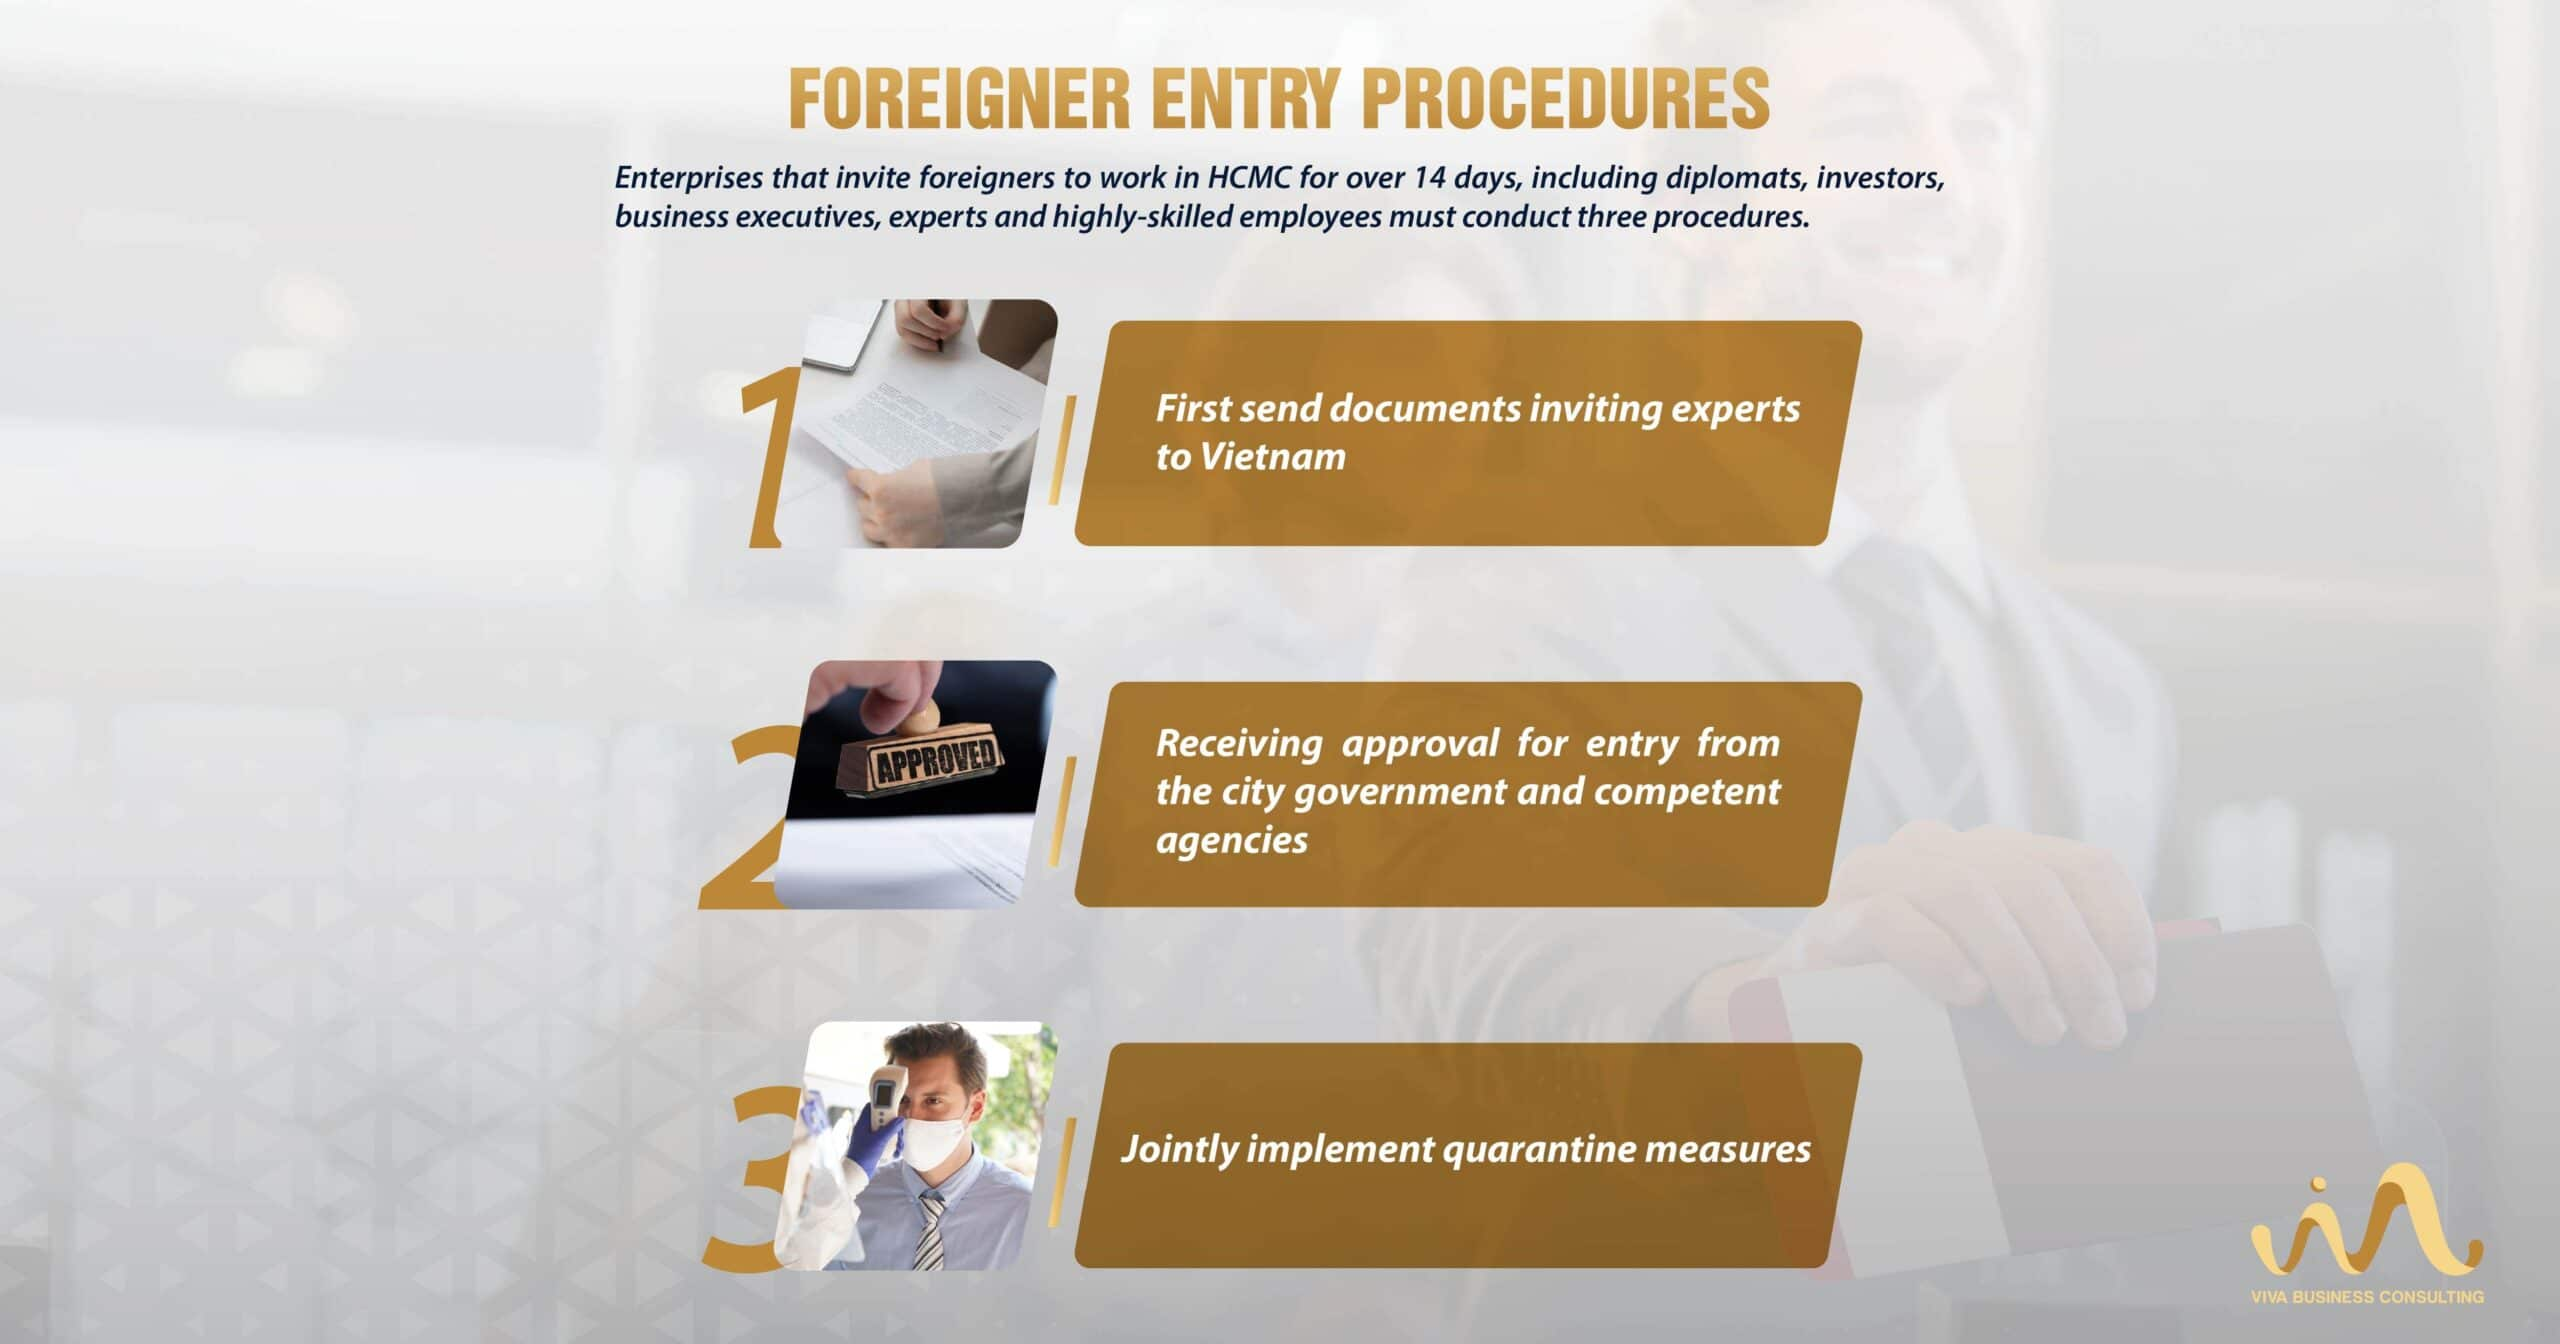 EXPERTS ENTRY PROCEDURES INTO VIETNAM